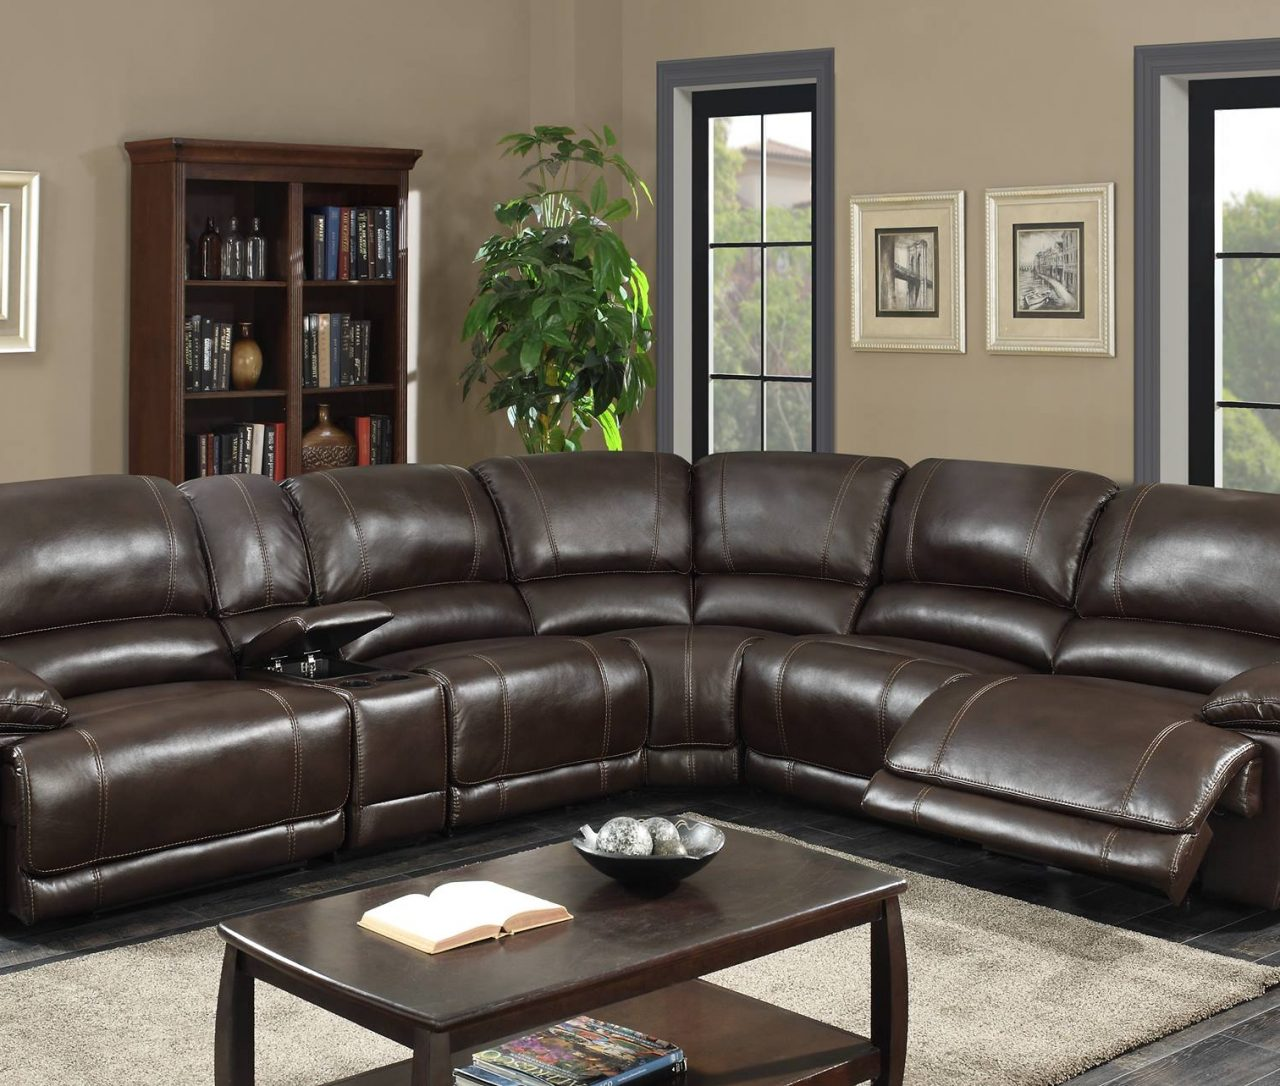 Living Room In Venice Fl: VENICE RECLINING SECTIONAL SOFA (NEW)